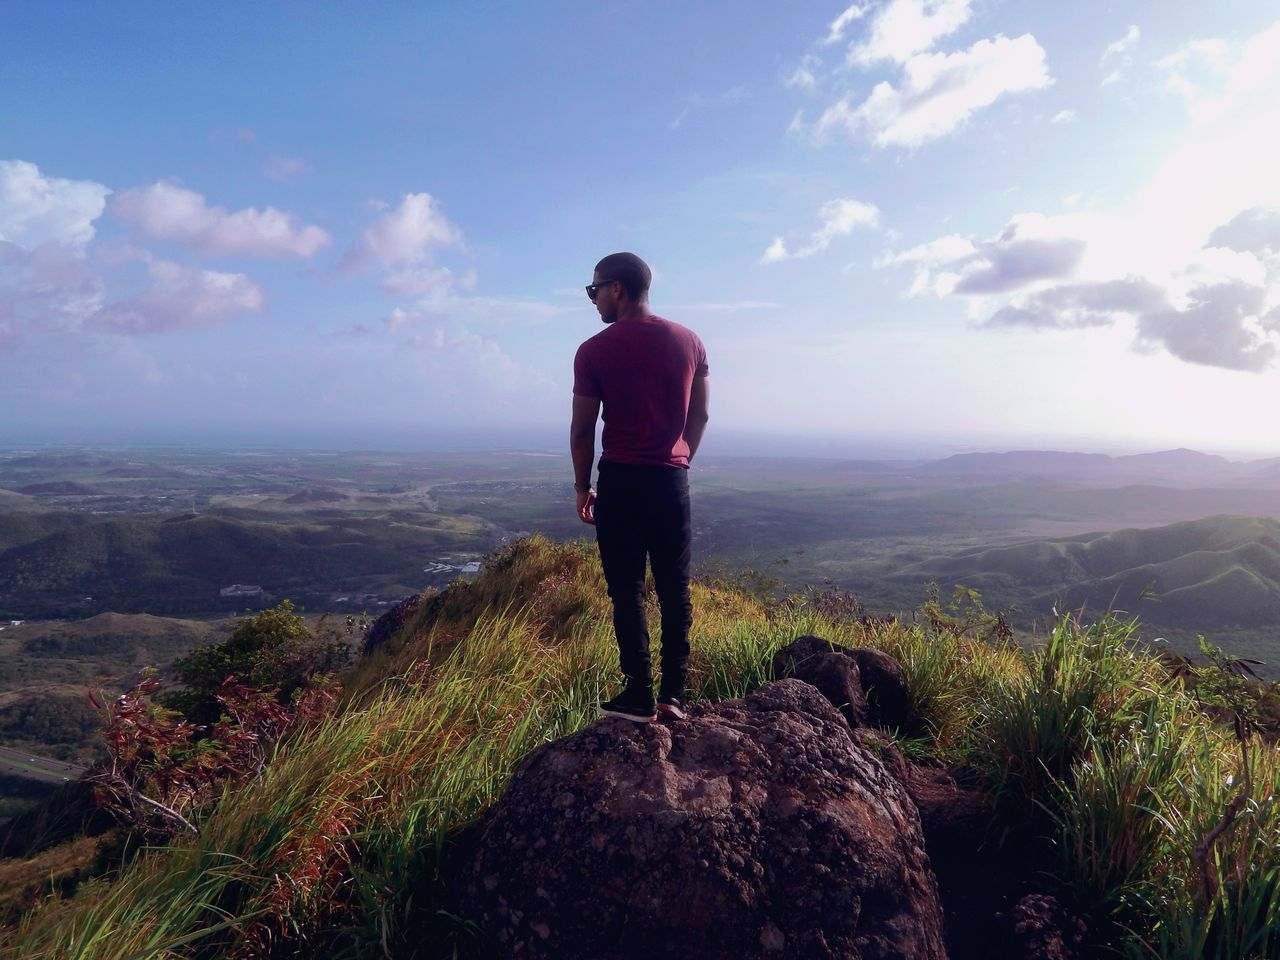 rear view, nature, sky, real people, beauty in nature, scenics, standing, full length, tranquility, one person, tranquil scene, casual clothing, outdoors, rock - object, landscape, leisure activity, cloud - sky, mountain, day, men, lifestyles, people